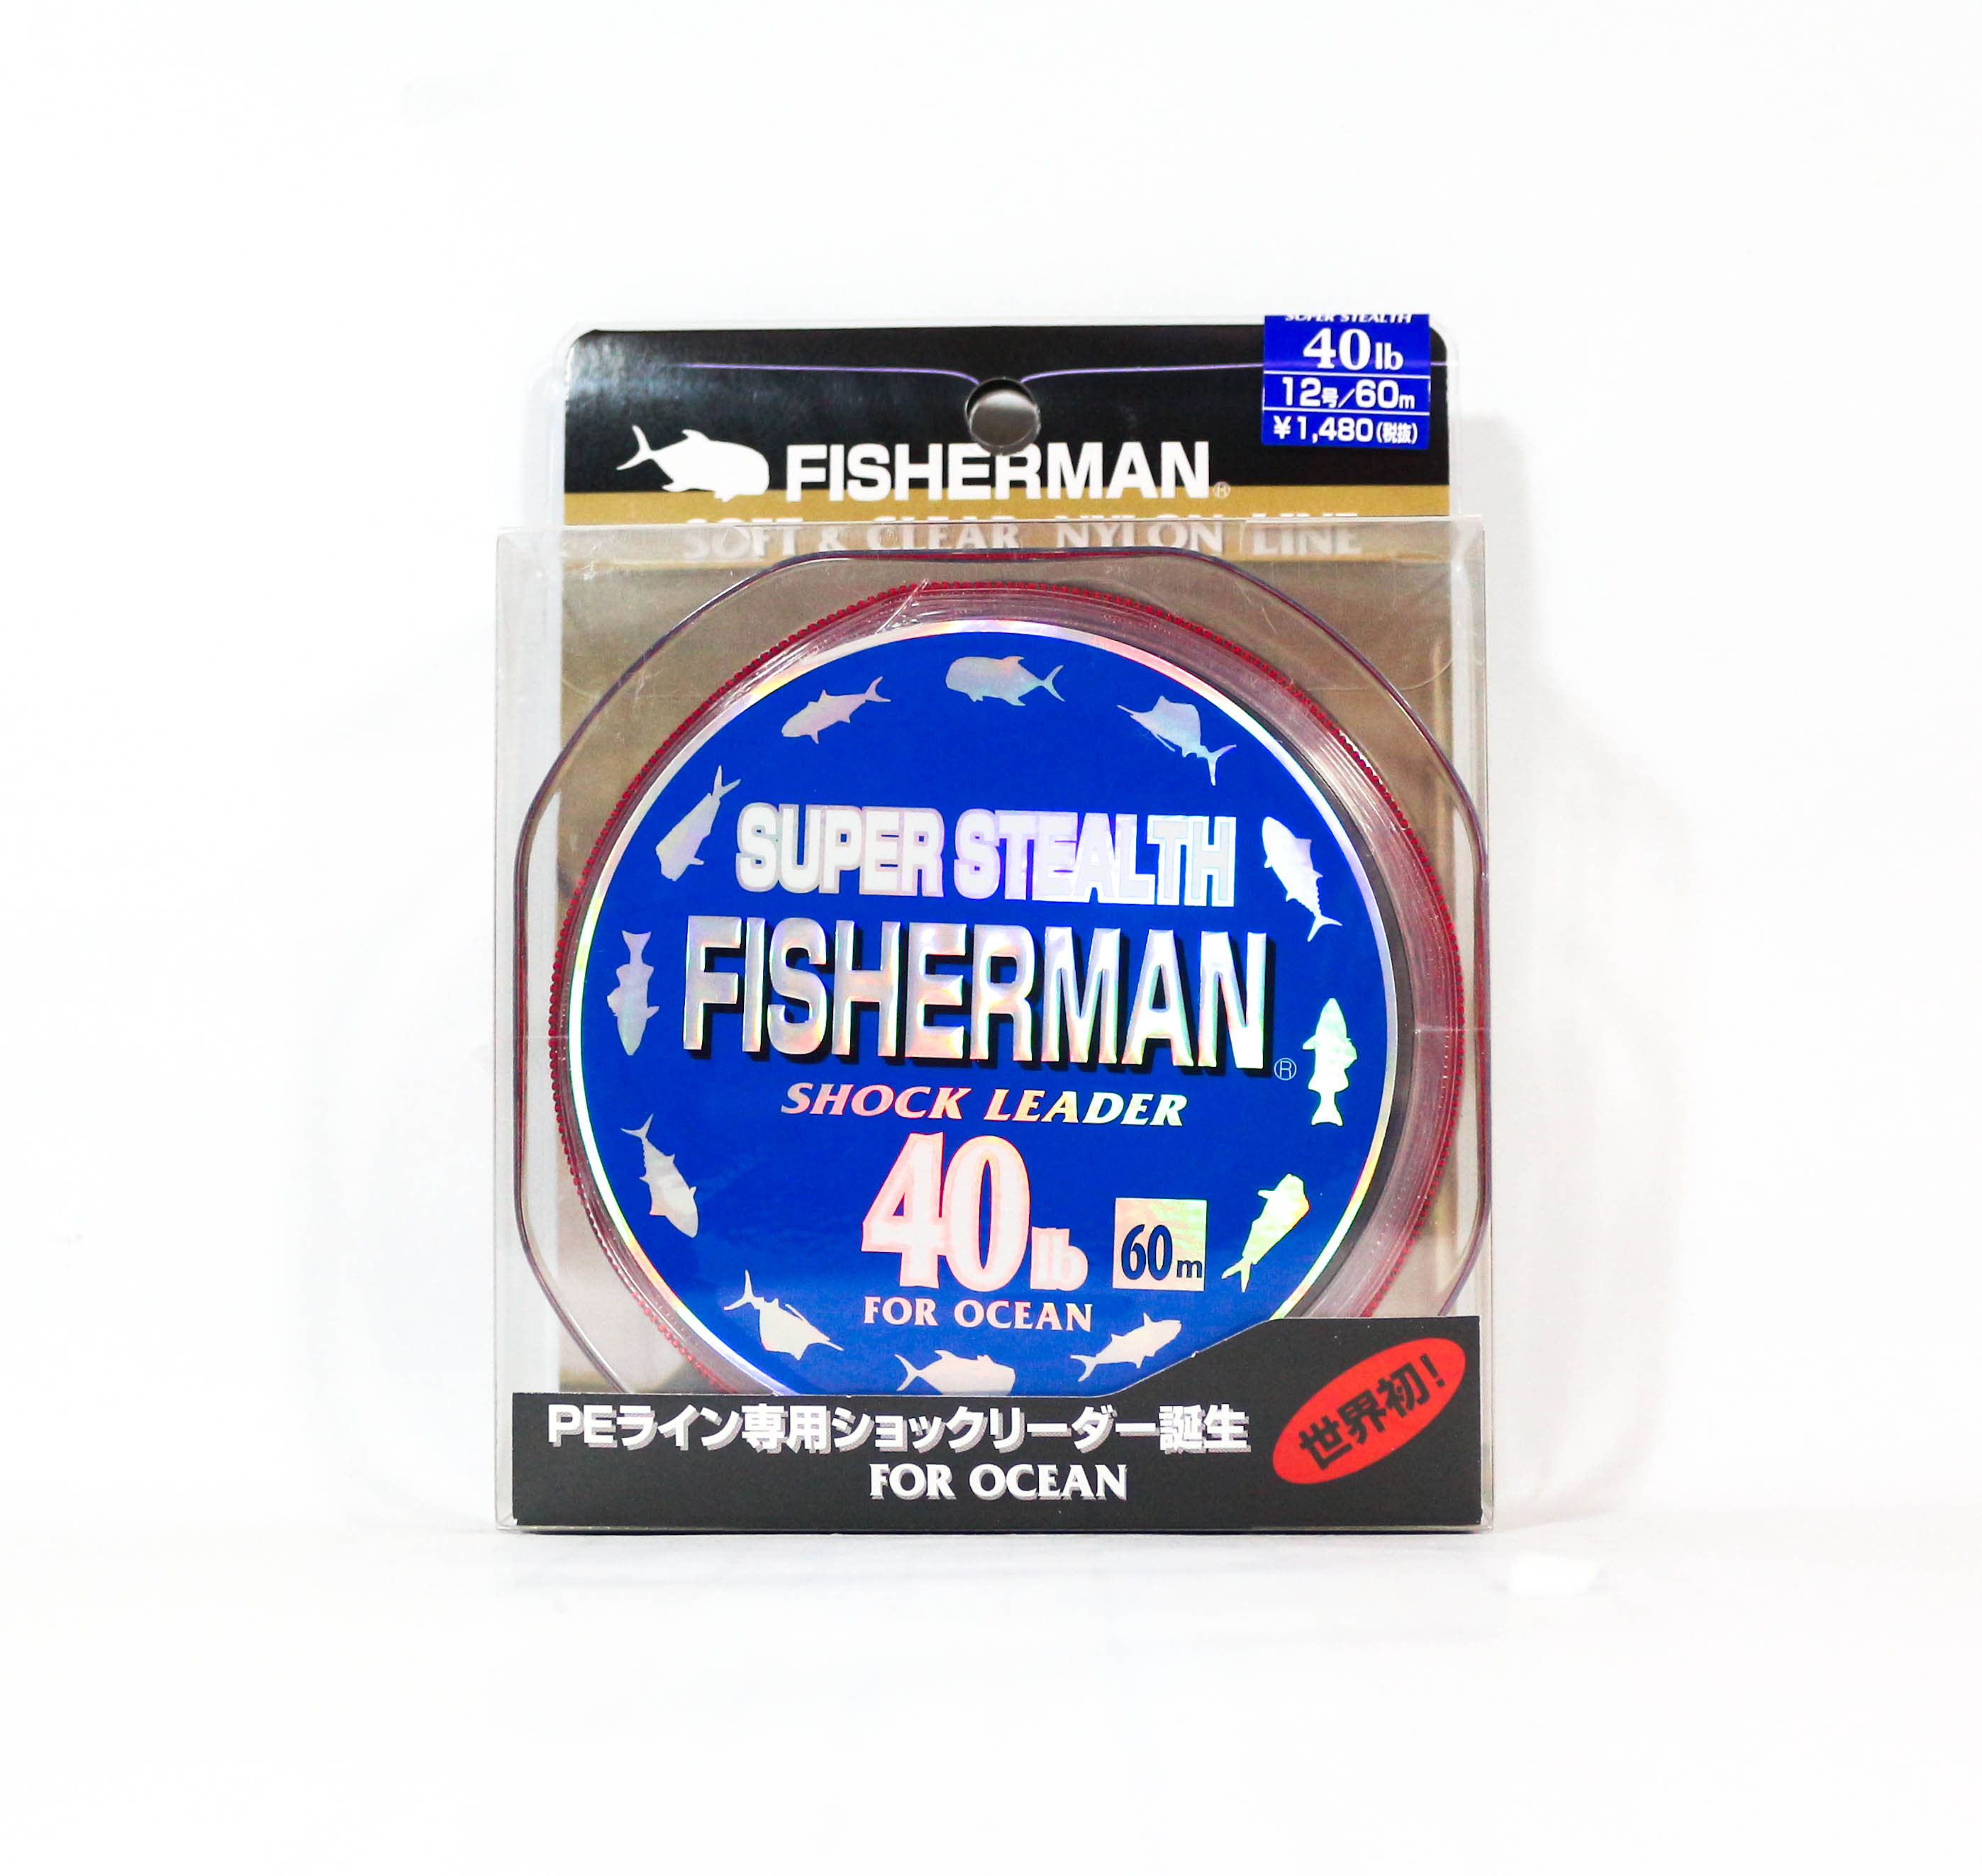 Fisherman Super Stealth Nylon Shock Leader 40 lb x 60 meter (0092)